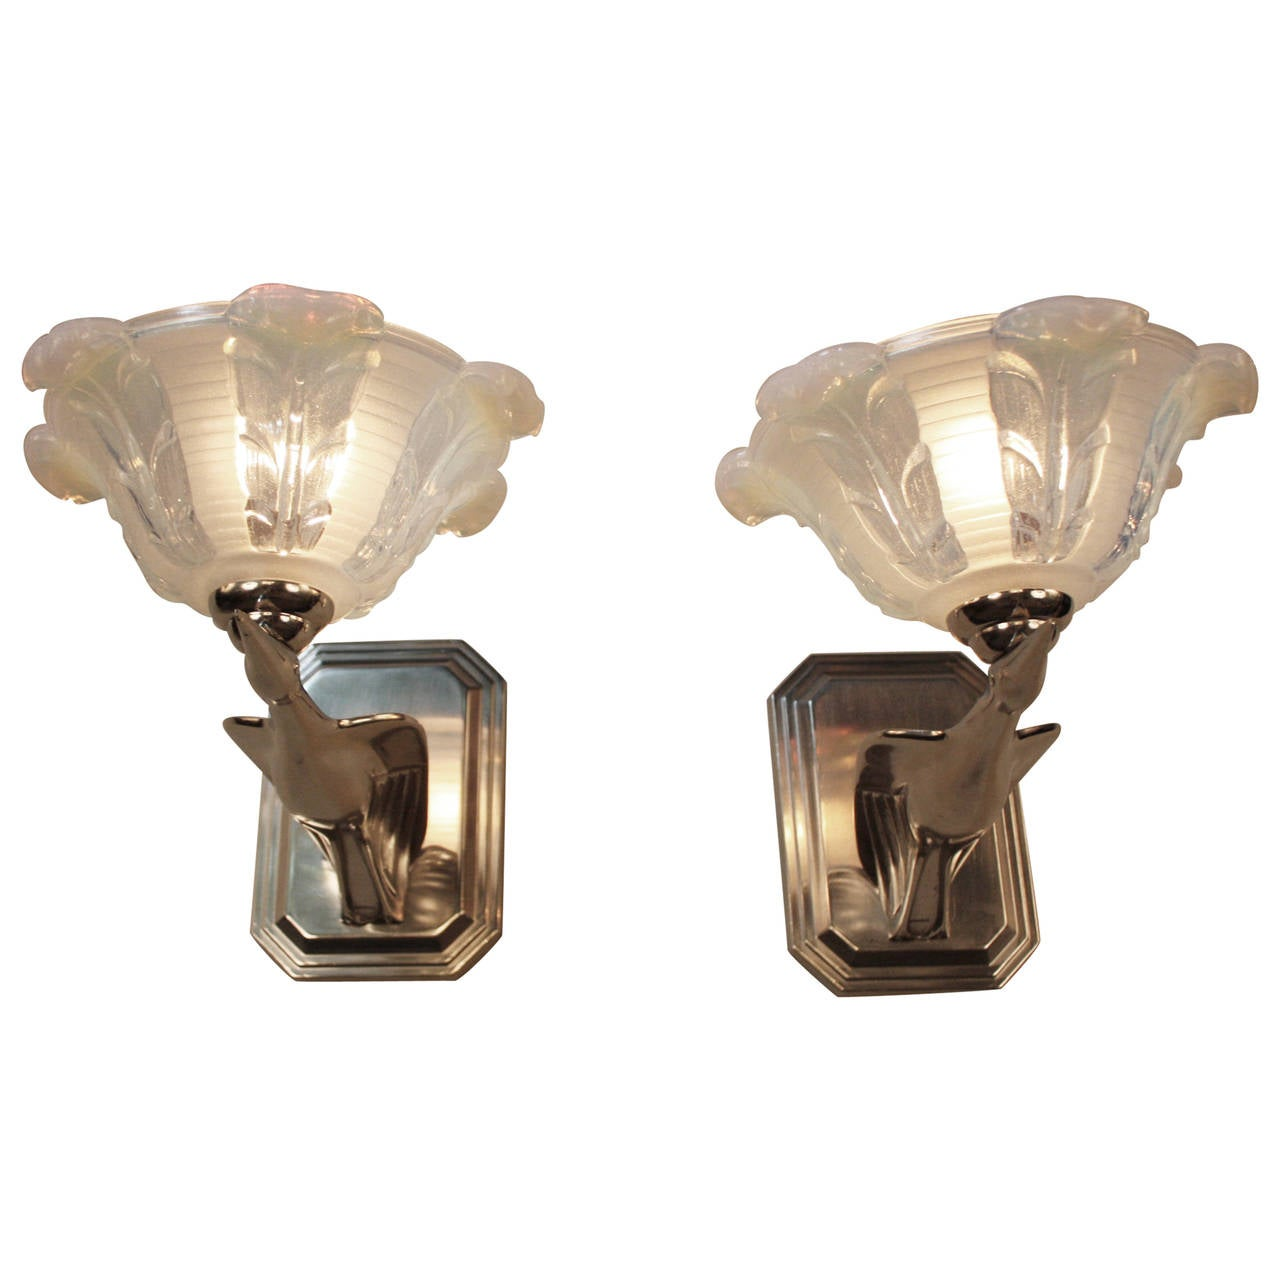 French Art Deco Nickel Wall Sconces in Flying Motion and Opalescent Shades at 1stdibs